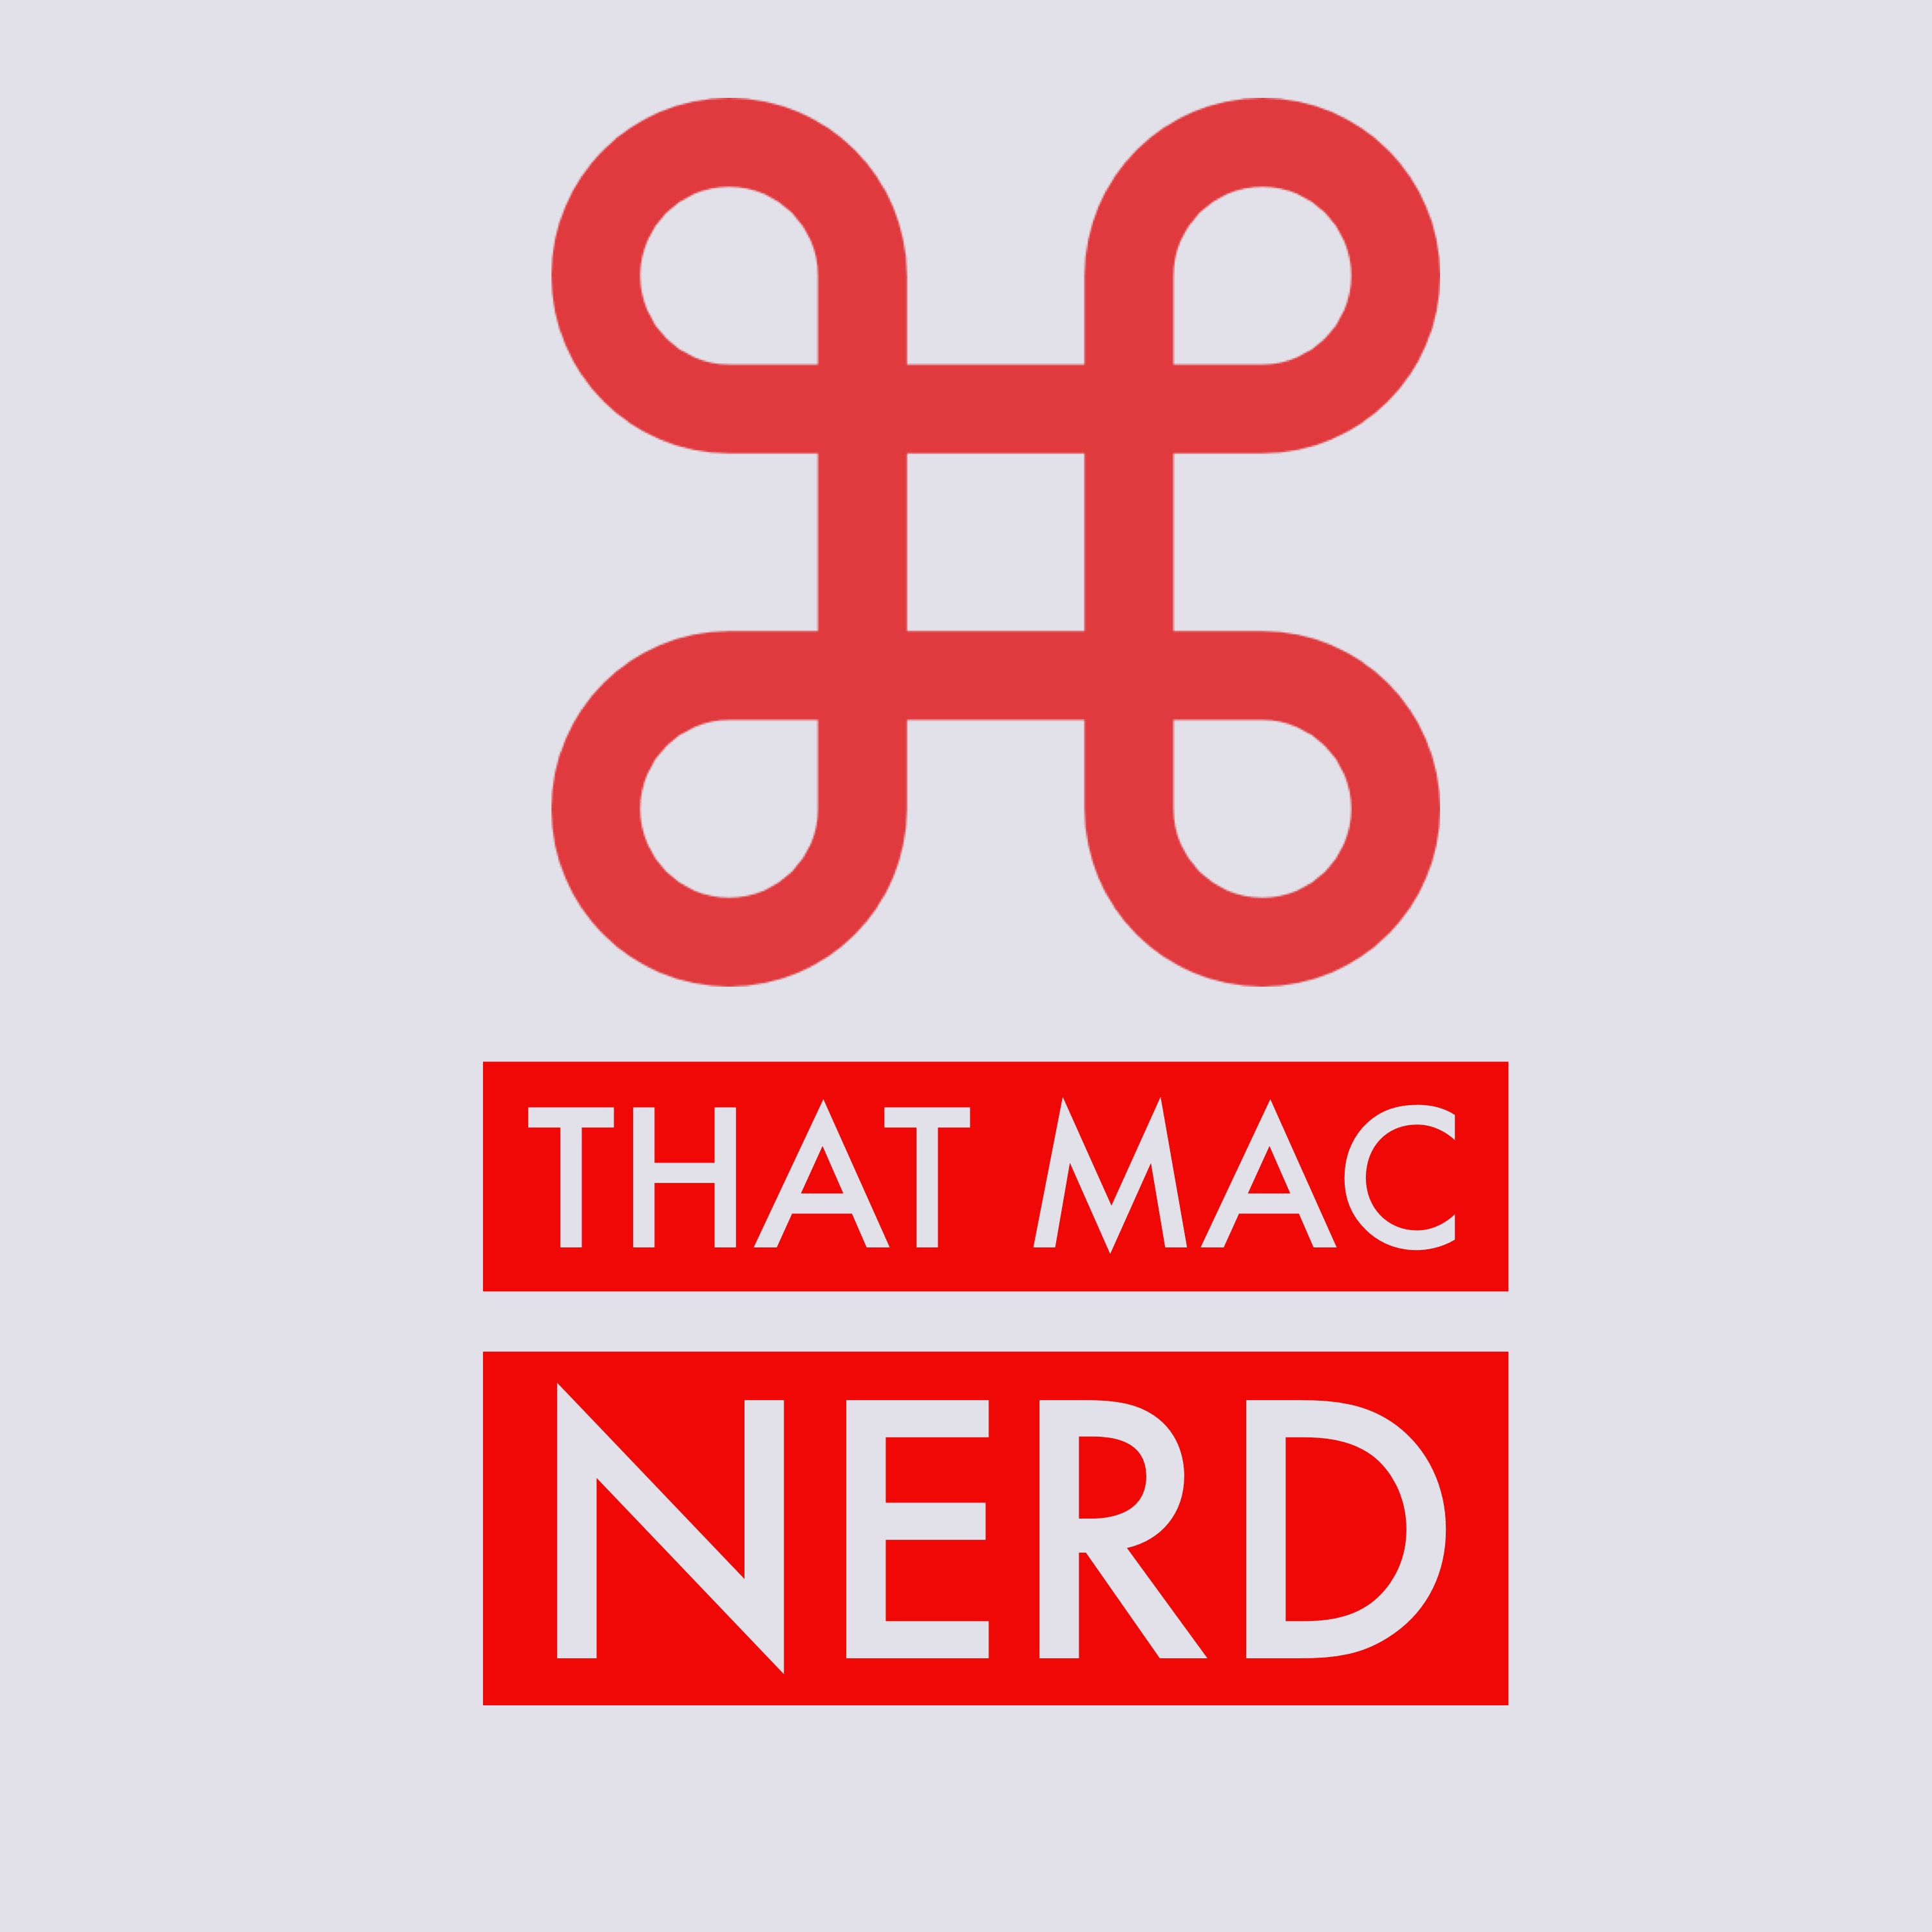 New Podcast for That Mac Nerd